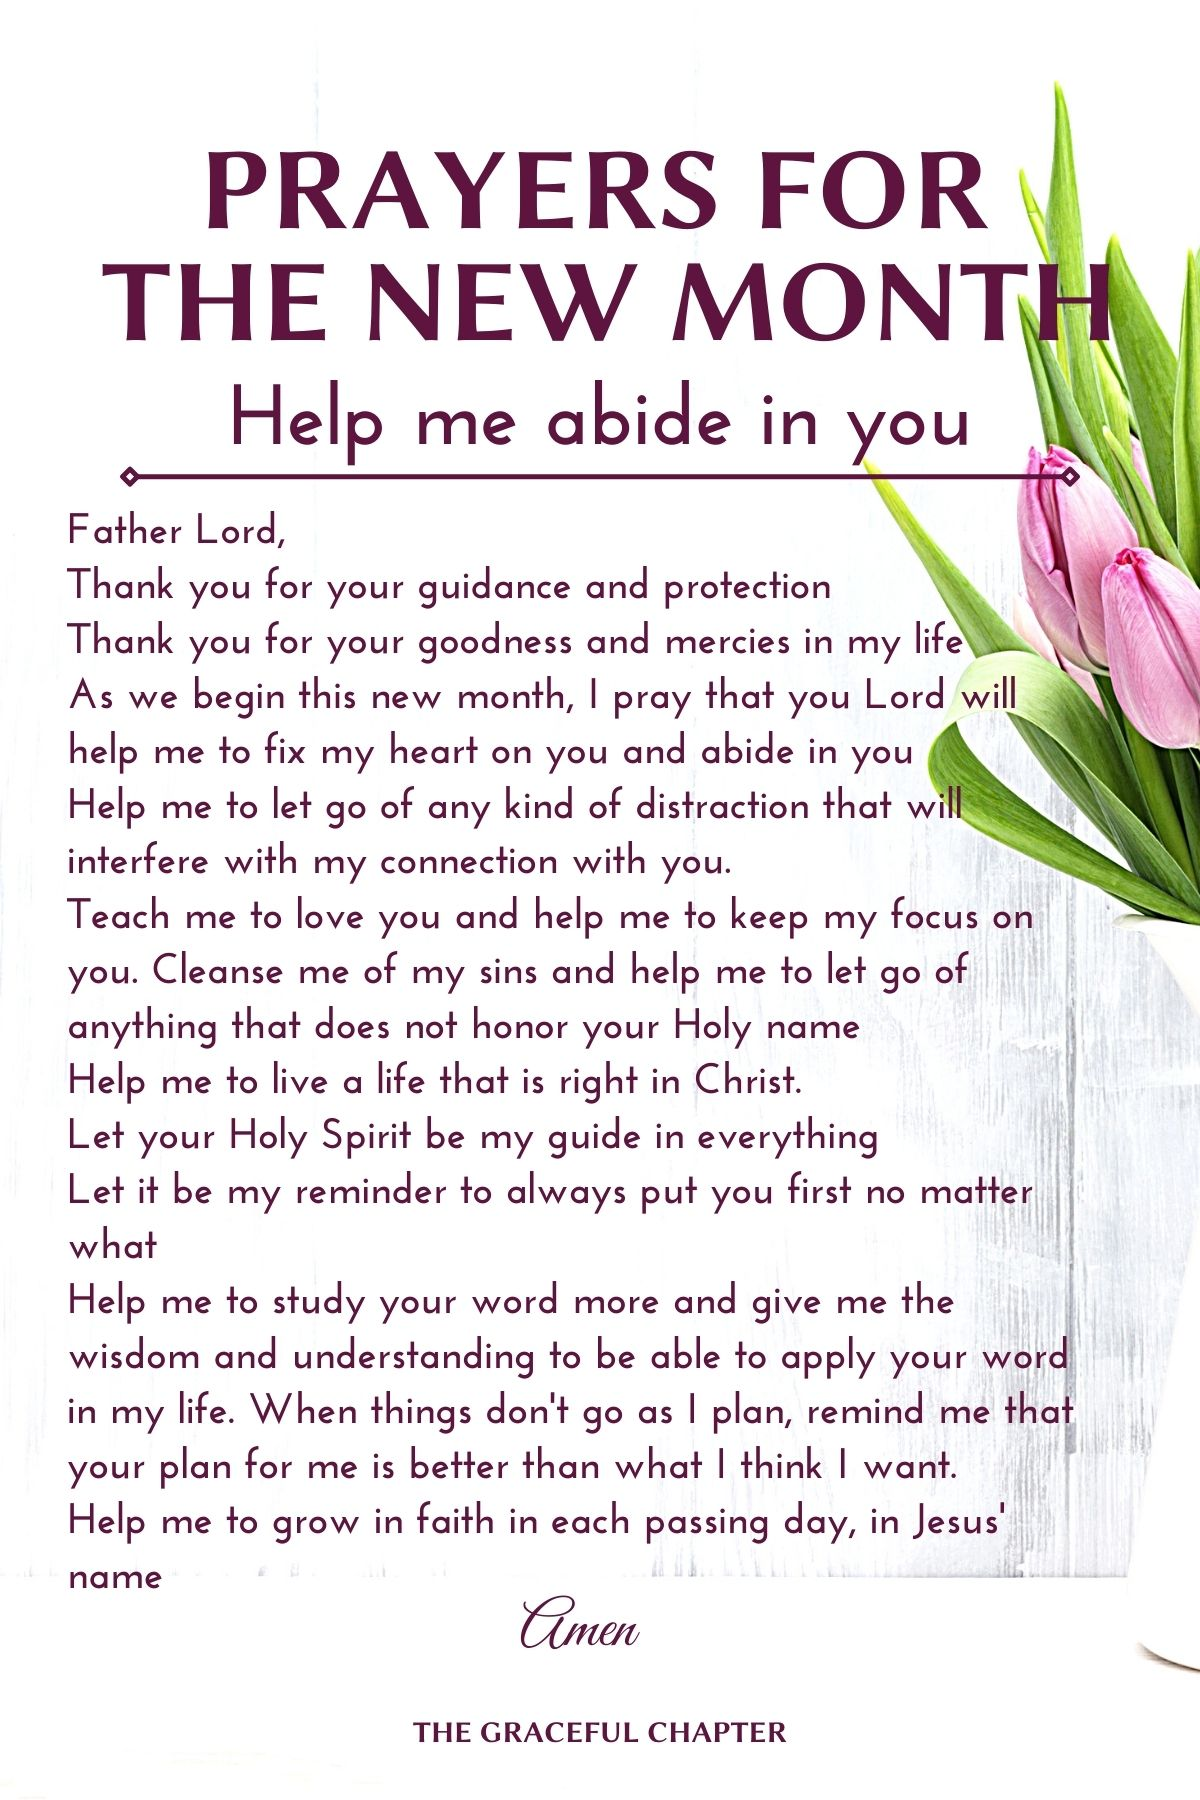 Prayers for the new month - Help me abide in you